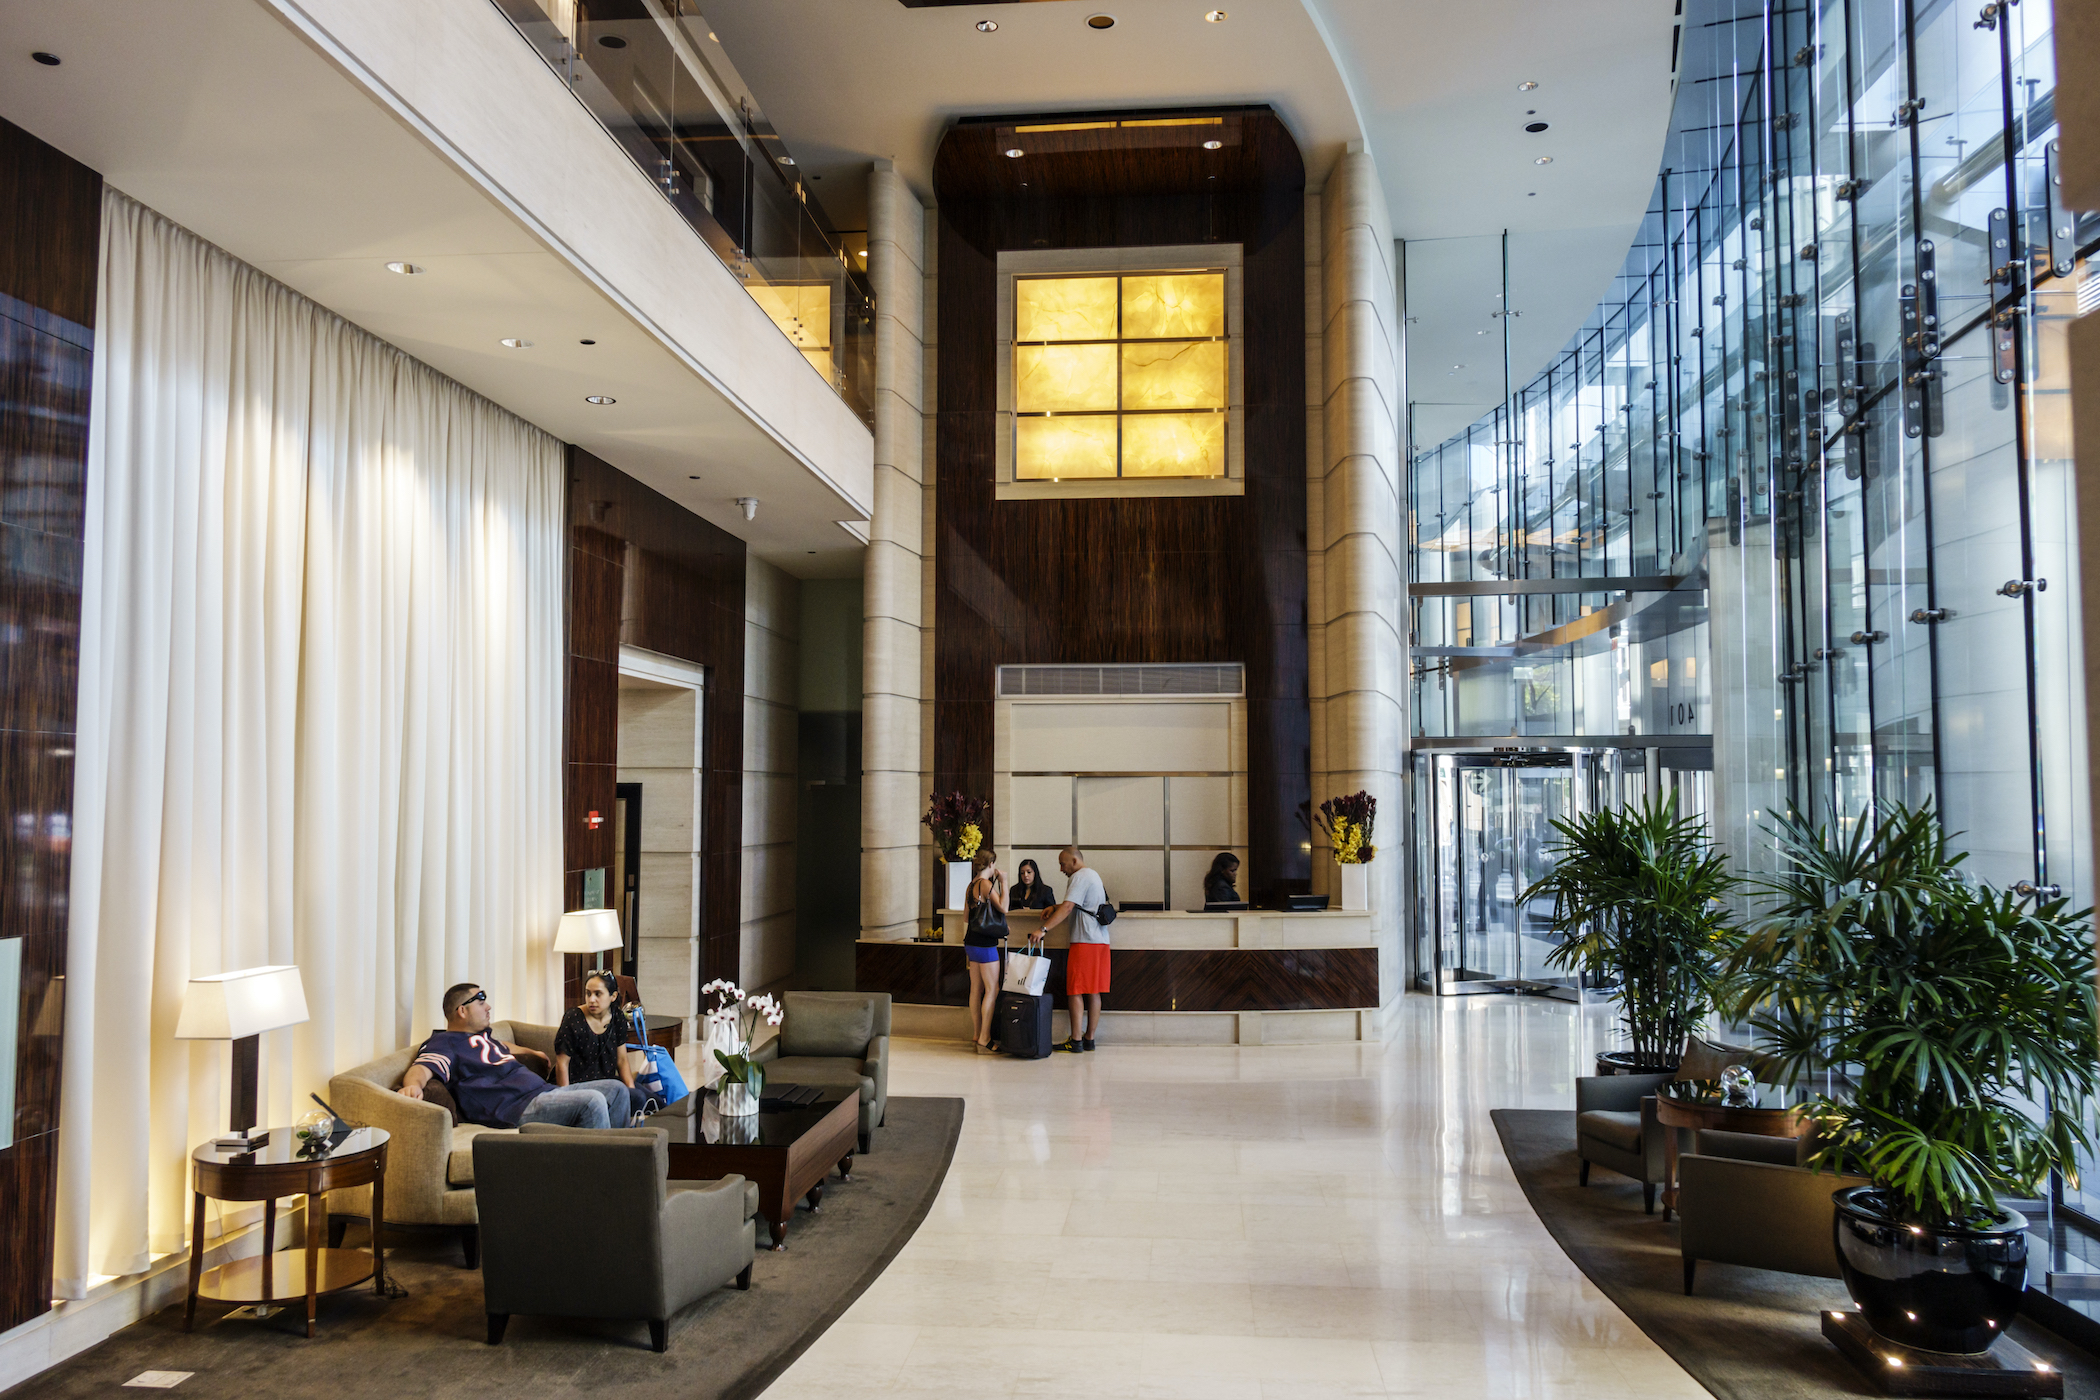 The U.S. hotel industry's recovery from the pandemic is seen as taking longer than originally expected. (Getty Images)